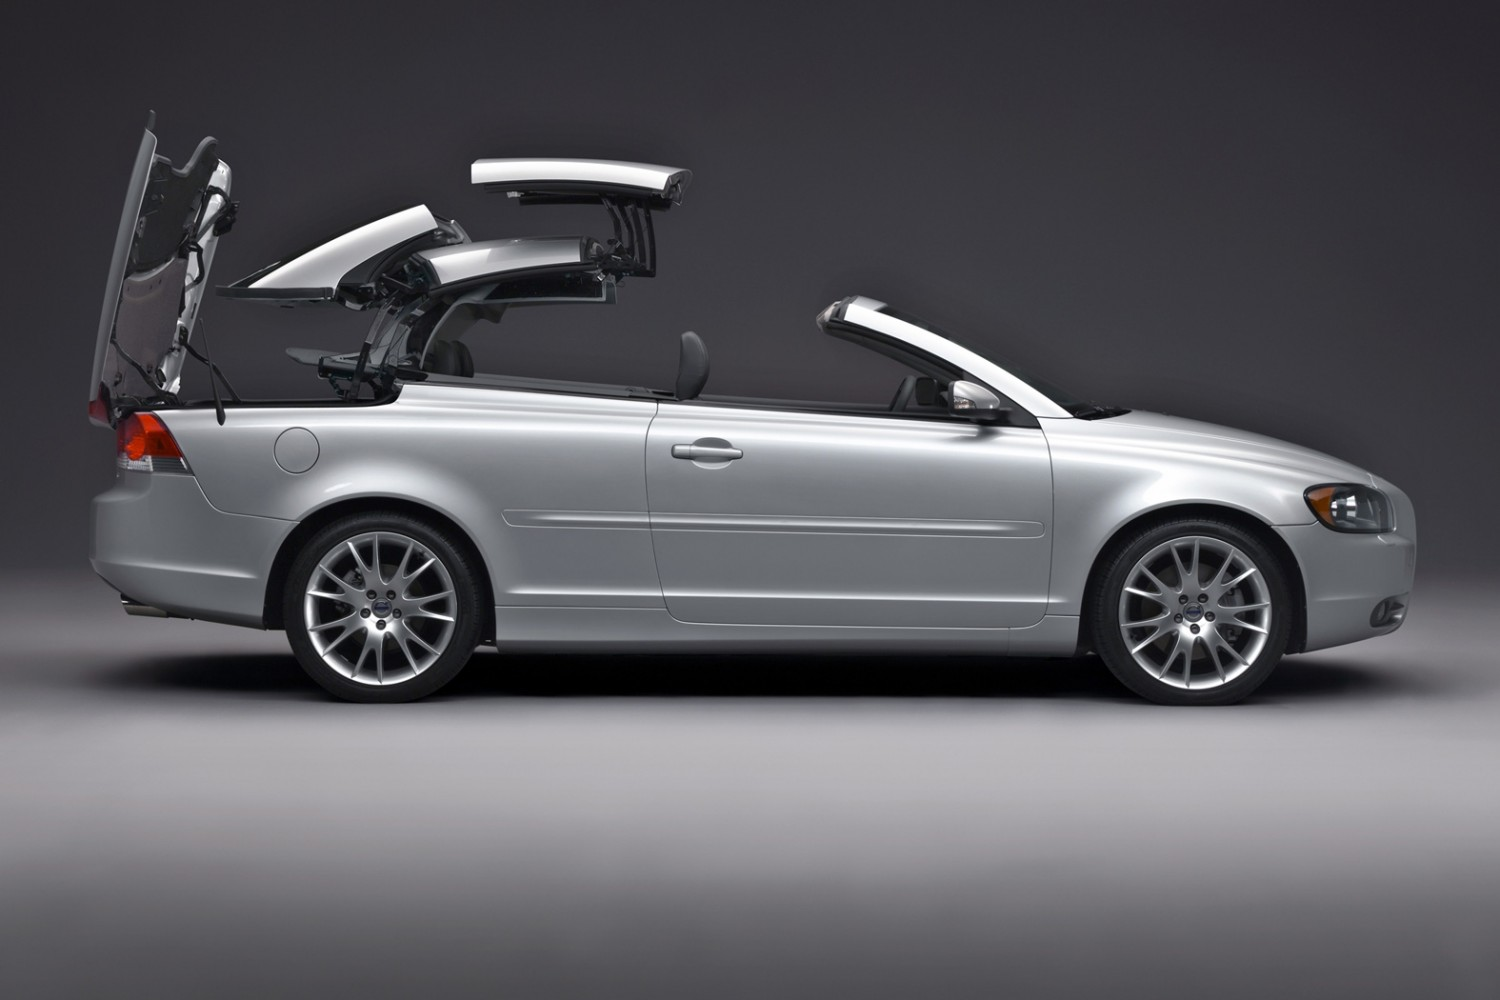 hight resolution of volvo c70 roof retraction 2